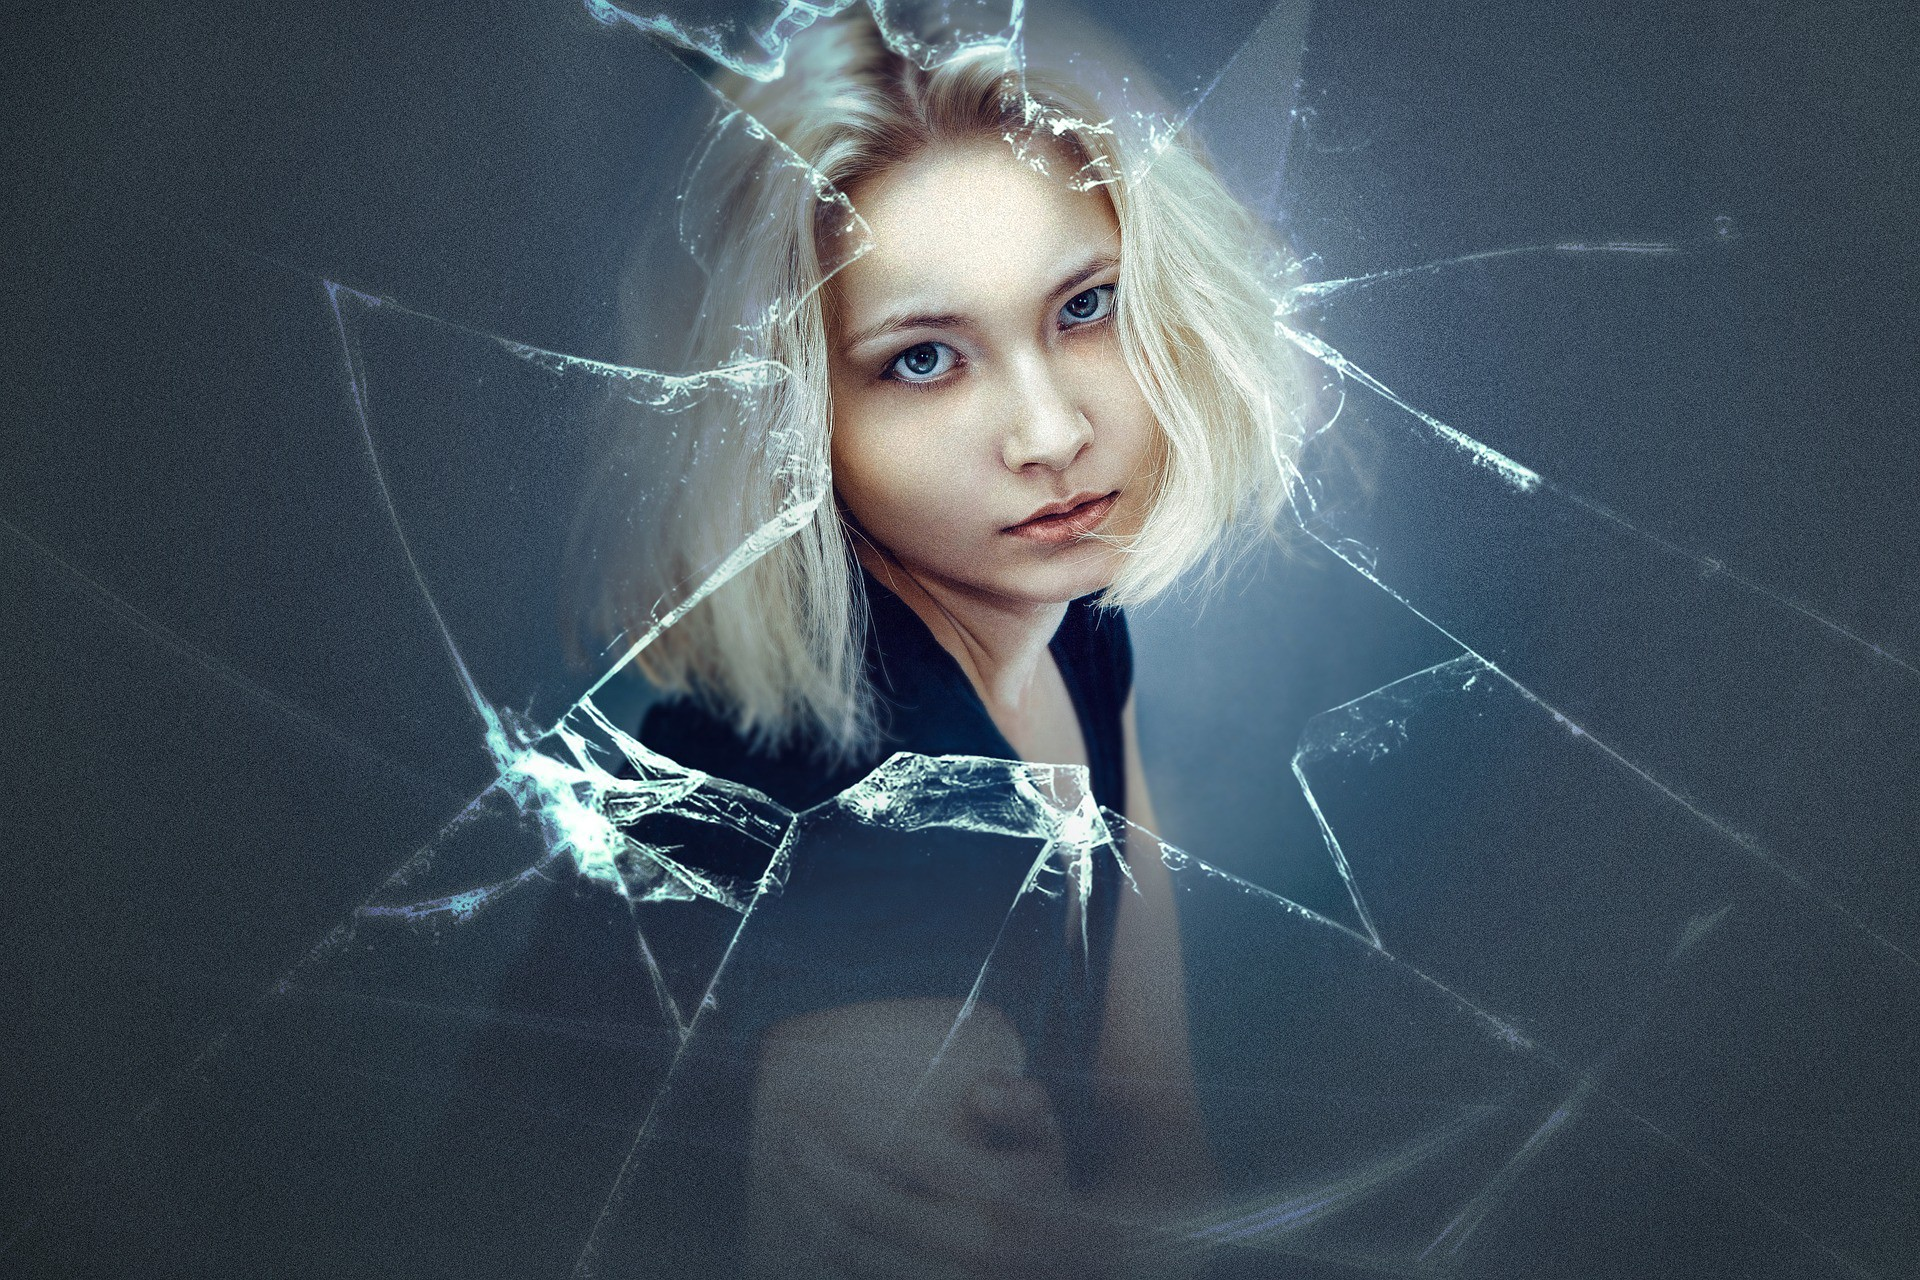 Image of blond girl and broken glass